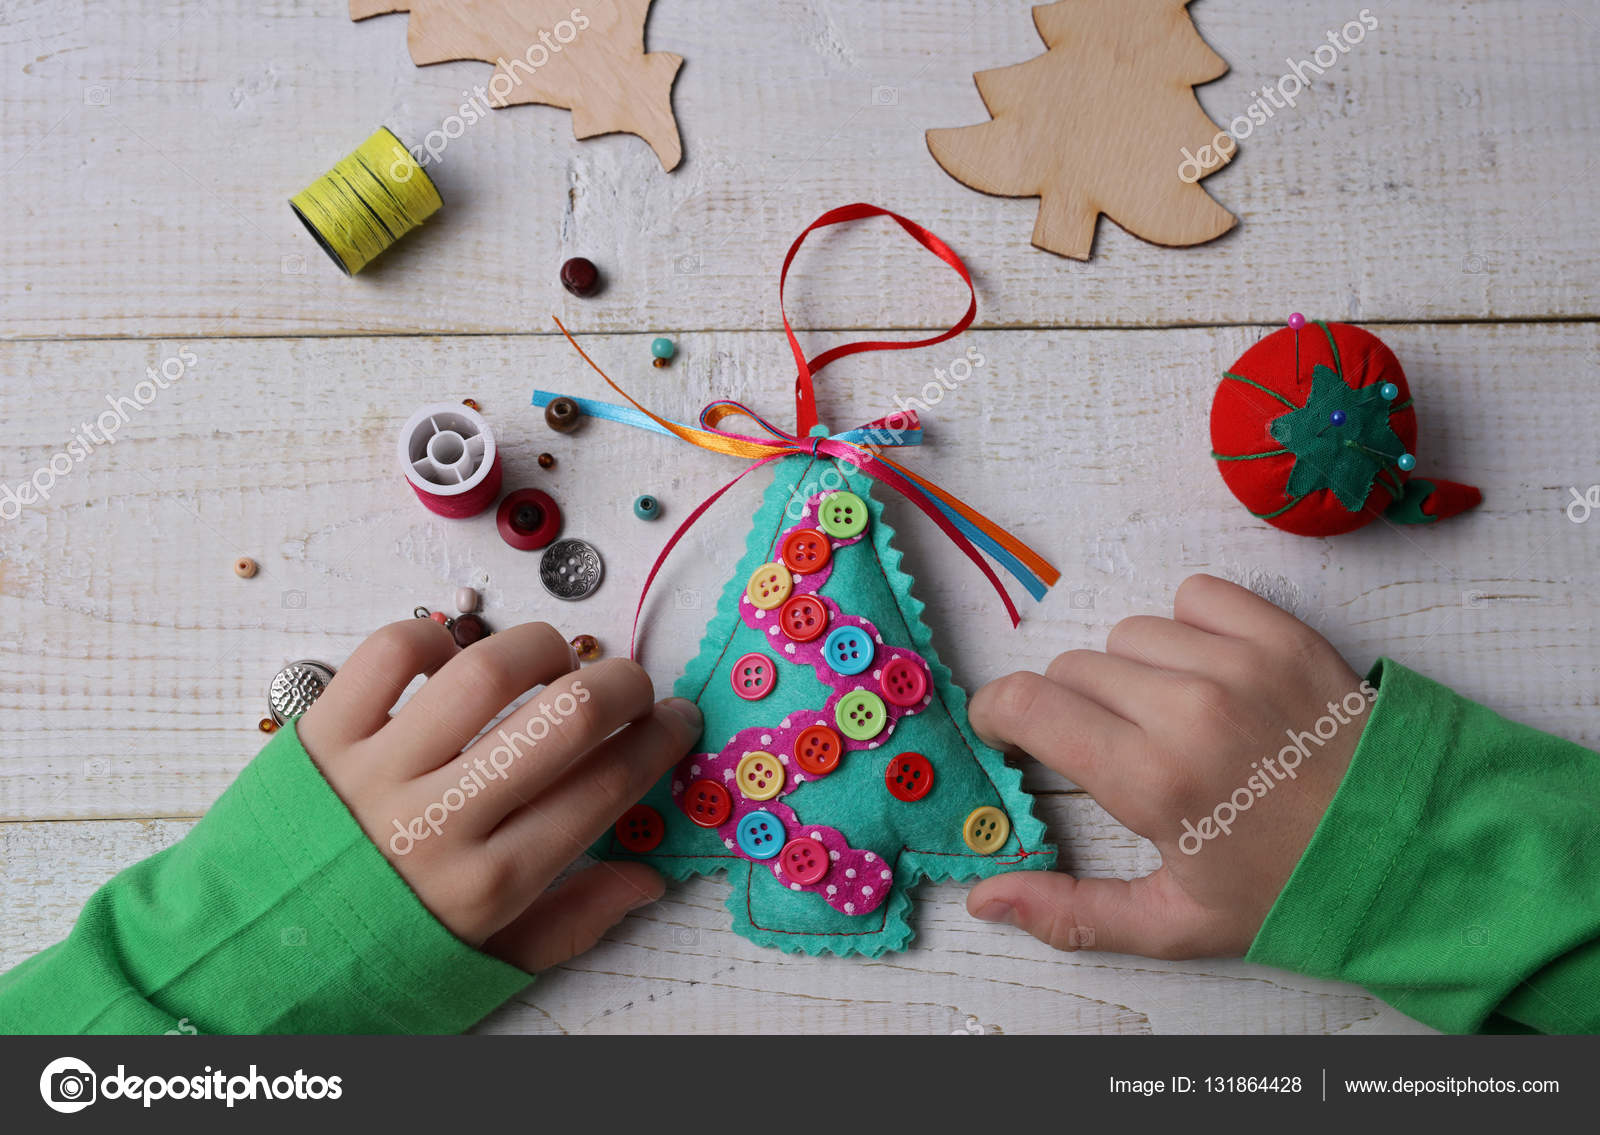 Child making felt Christmas Tree decoration ornament close up Kids Art Art Projects Handmade New Year decorations Happy family concept